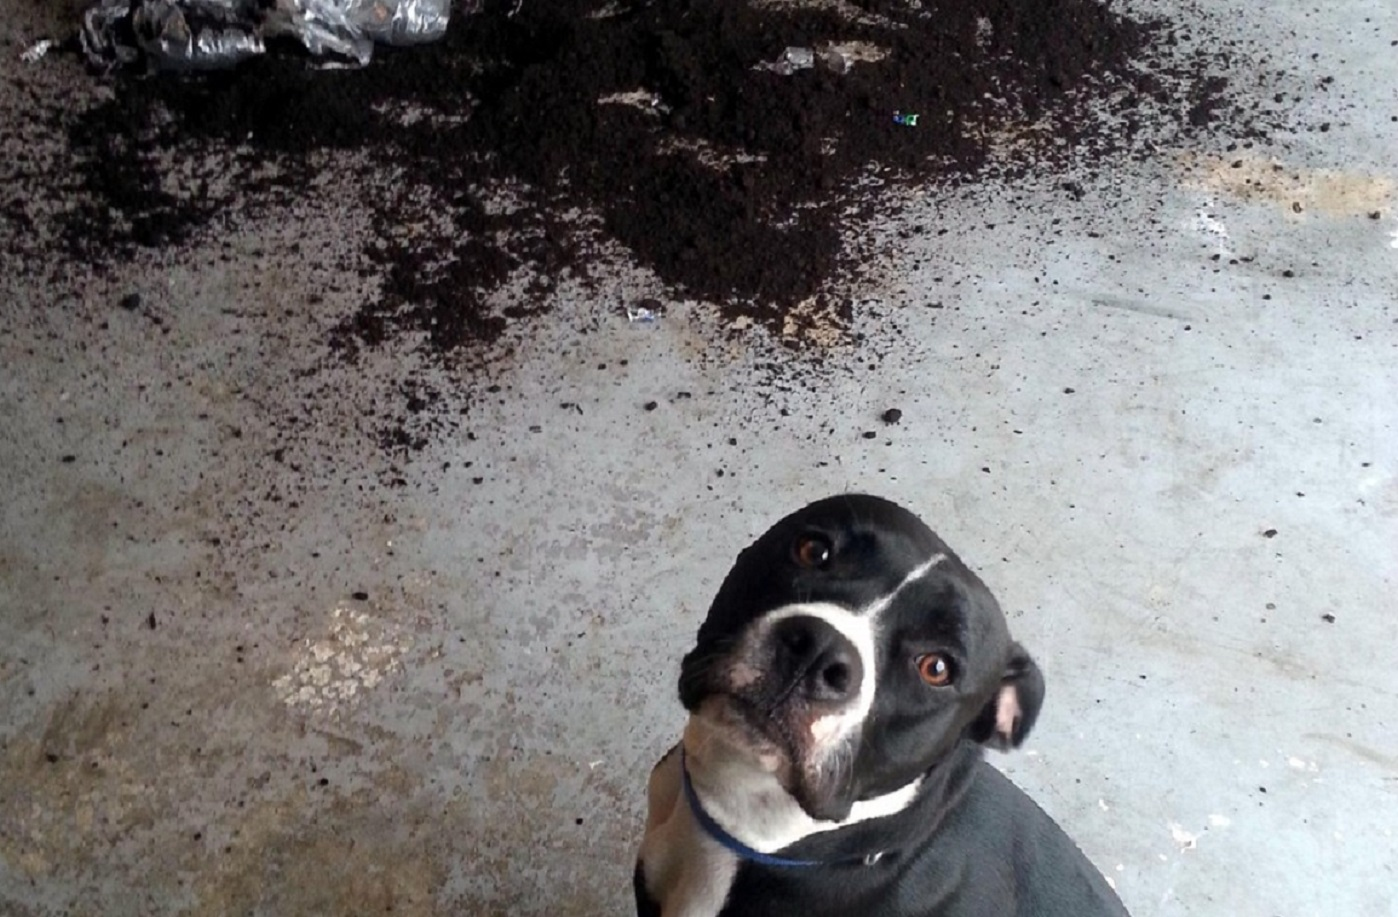 11 Innocent Dogs That Don't Know How This Mess Happened